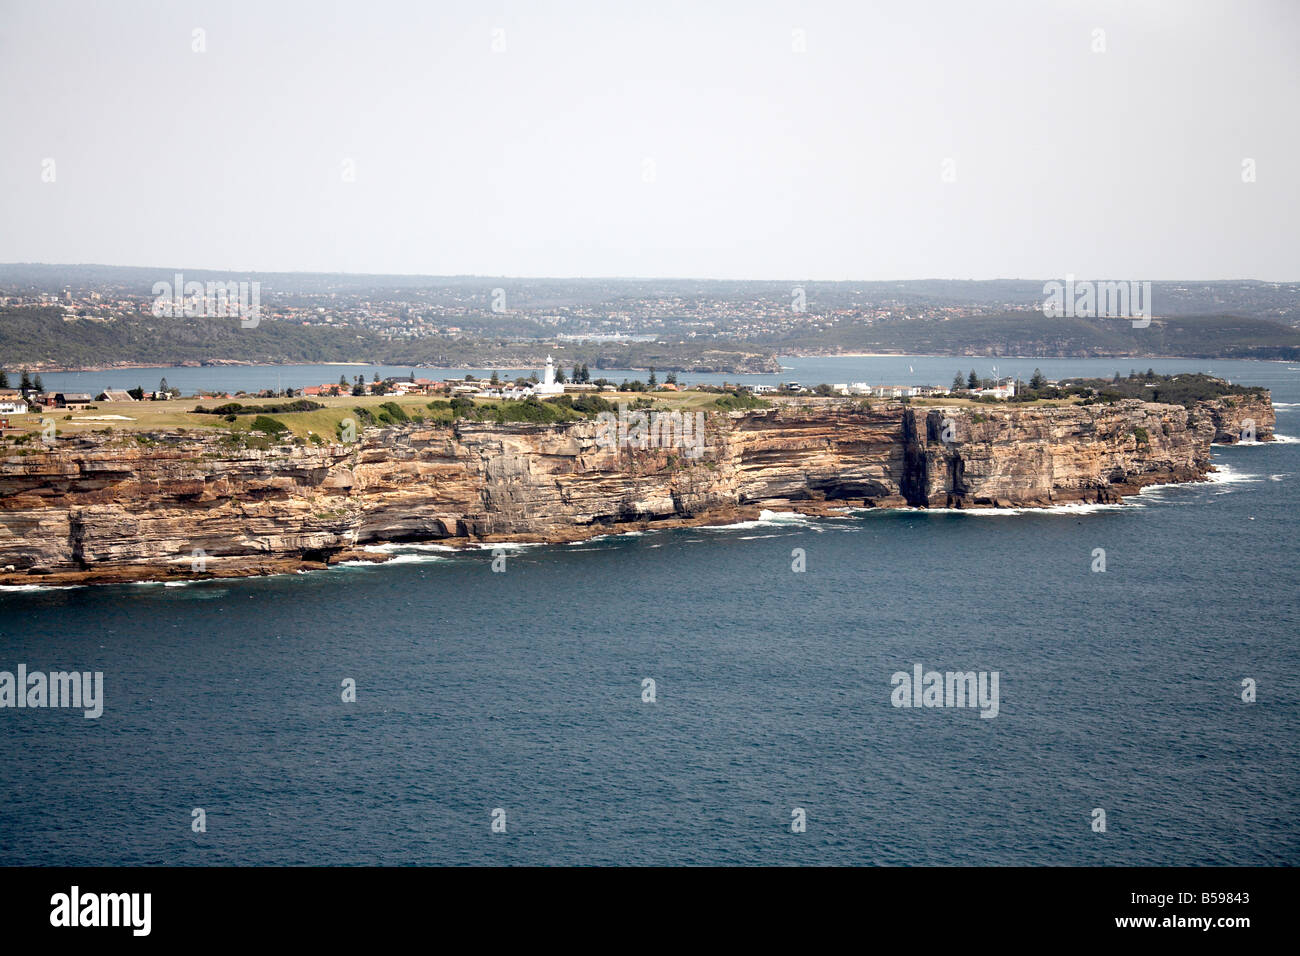 Aerial view west of lighthouse Gap Park Watsons Bay Sydney NSW Australia High level oblique - Stock Image